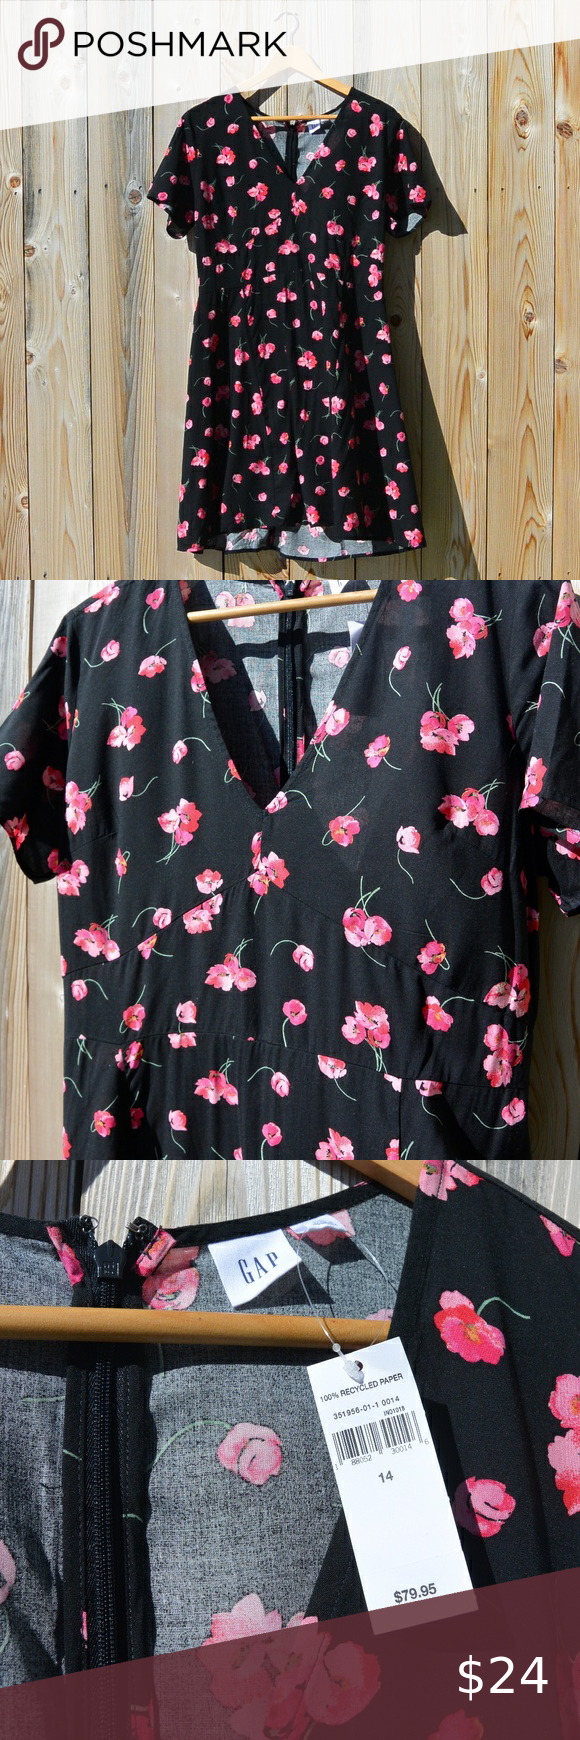 Nwt Charlotte Russe Black Dress With Pink Flowers Nwt Charlotte Russe Floral Dress Color Is Black And Clothes Design Colorful Dresses Charlotte Russe Dresses [ 1740 x 580 Pixel ]